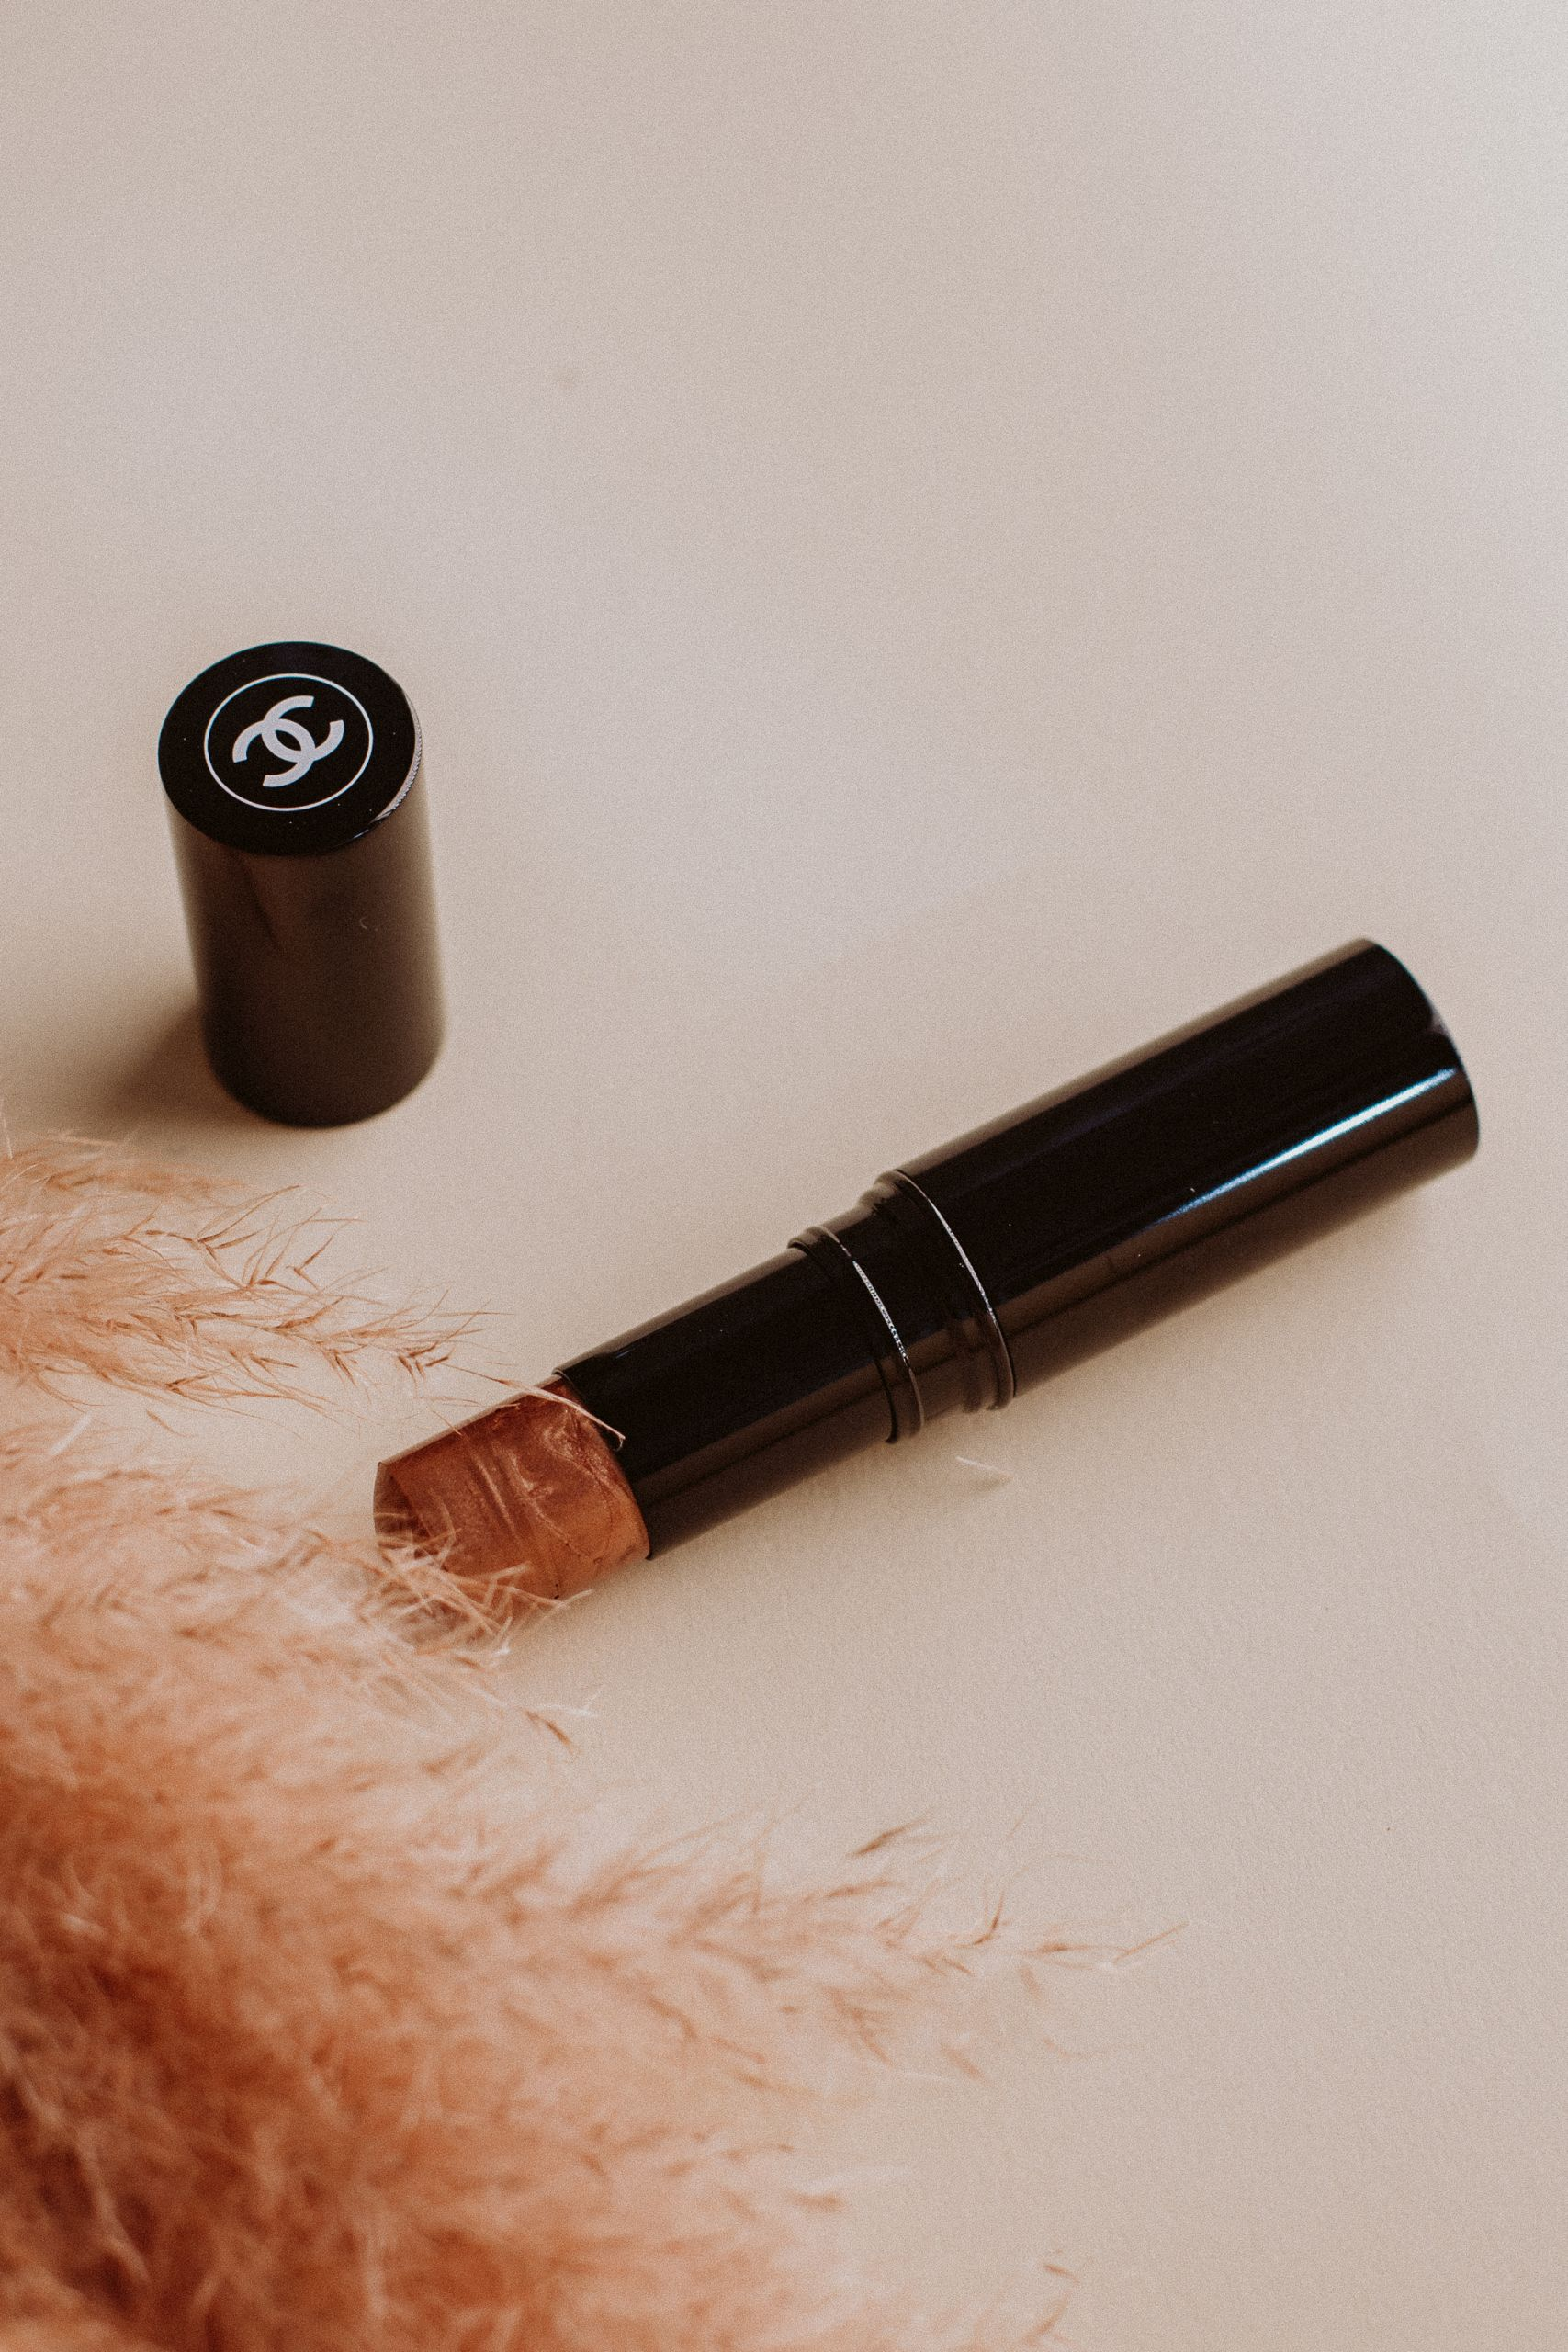 Chanel Beauty FRÜHJAHR-SOMMER-KOLLEKTION 2020 Review - Love Daily Dose